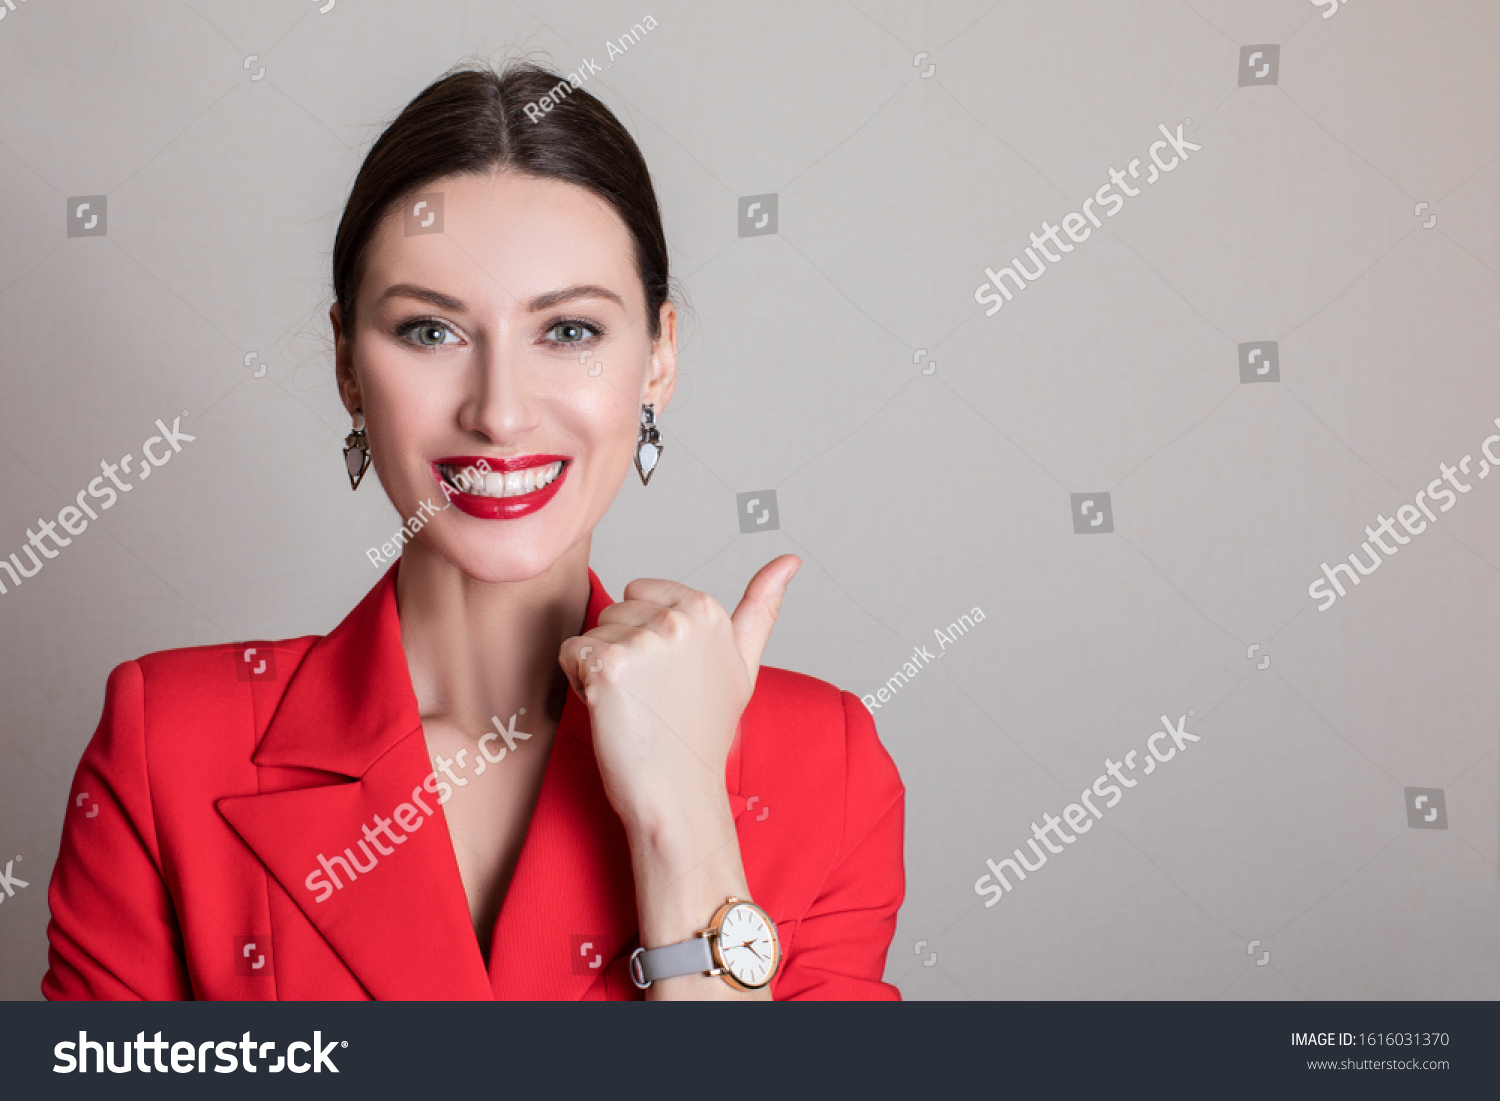 Girl bank worker in a red blazer smiles a snow-white smile showing class gesture. Isolated portrait of smiling business woman #1616031370